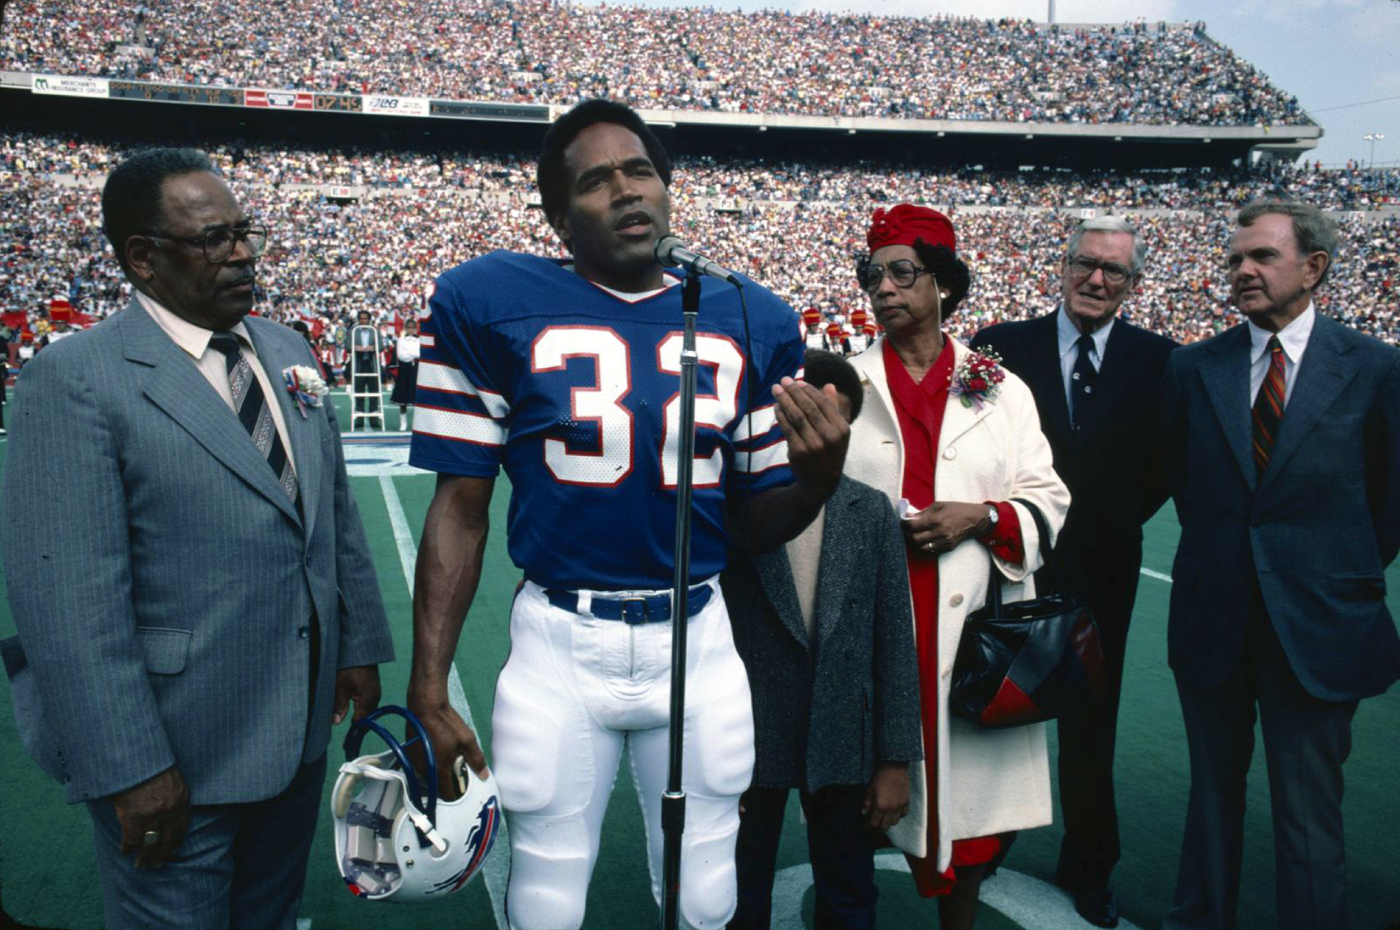 OJ Simpson reveals who his quickly becoming his favorite NFL player.